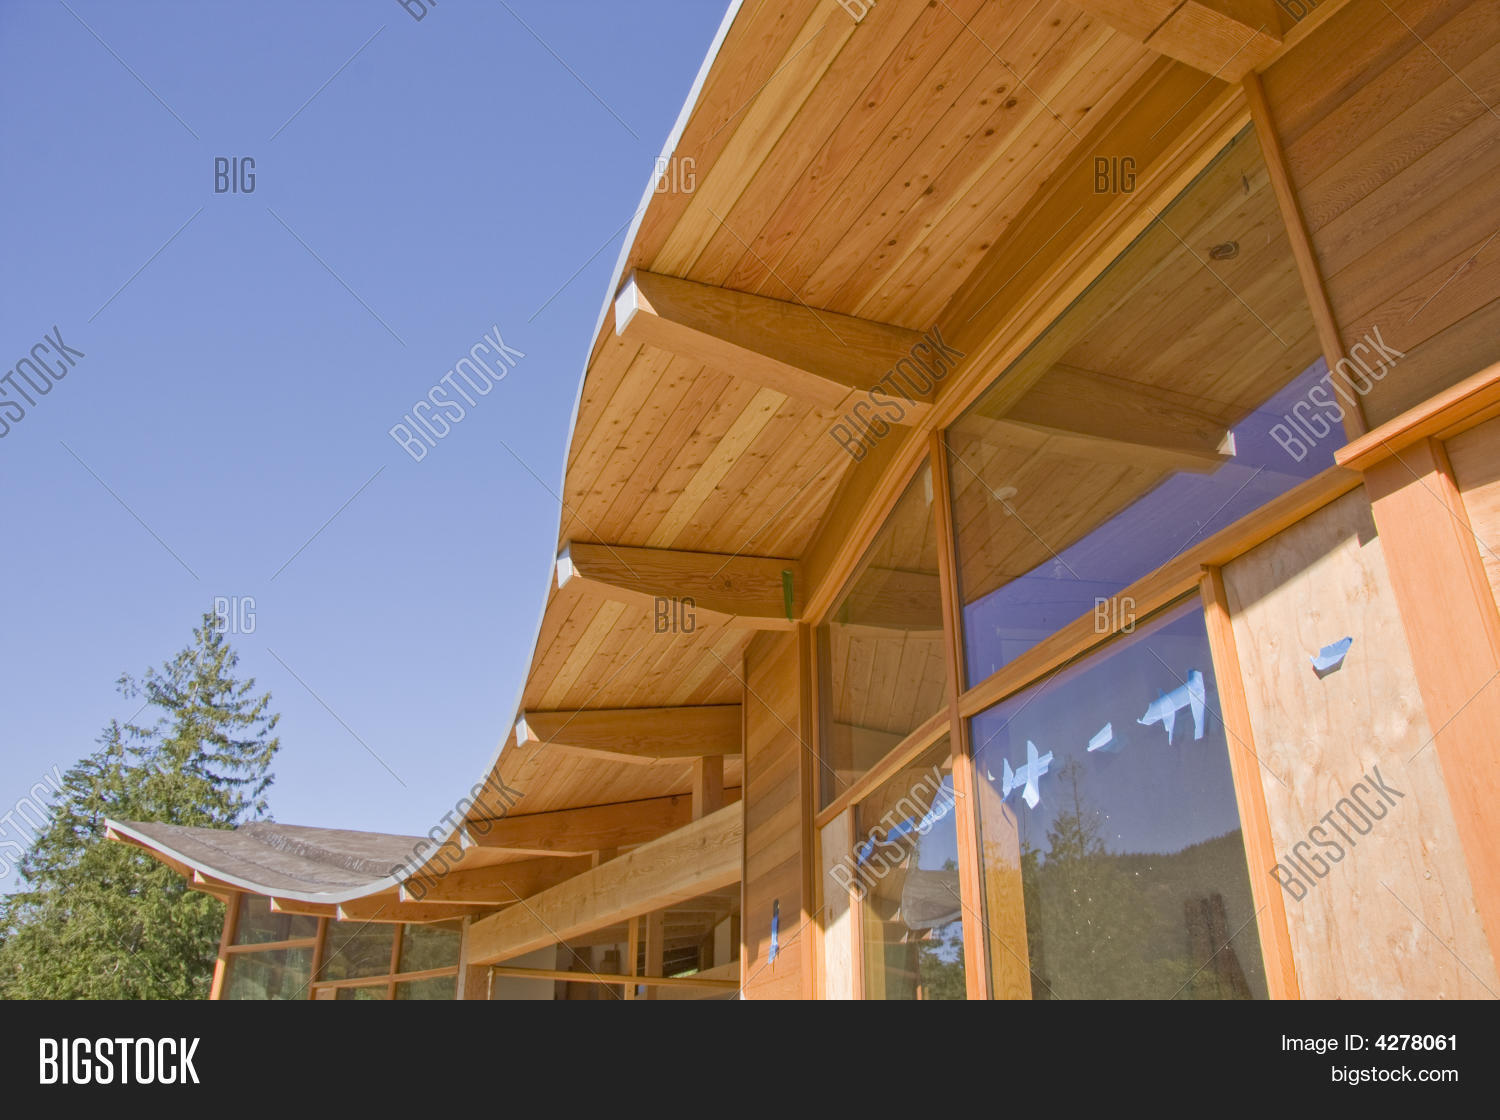 Timber Frame House Curved Roof Construction 4278061 Image